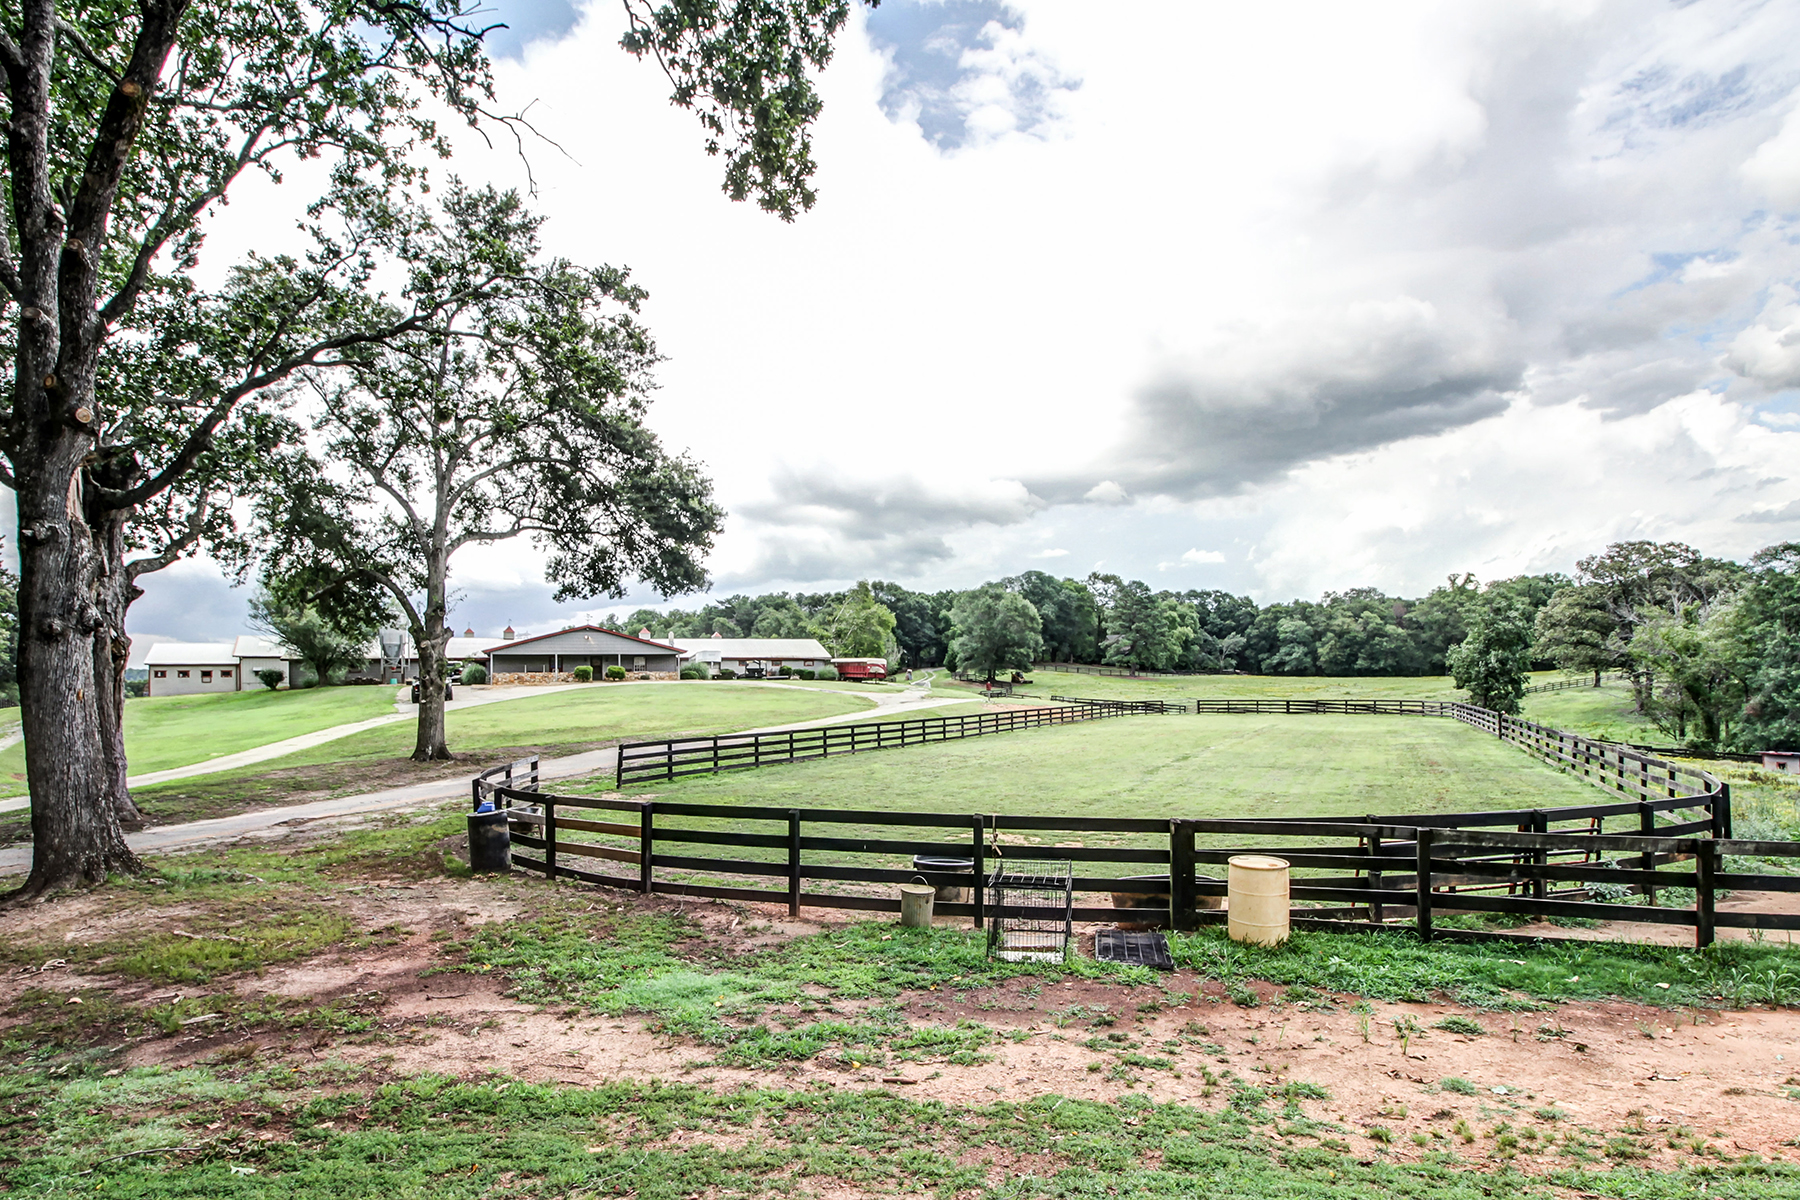 Single Family Home for Sale at UNIQUE EQUESTRIAN ESTATE 151 Lake Hill Farm Rd, Mooresboro, North Carolina 28114 United States